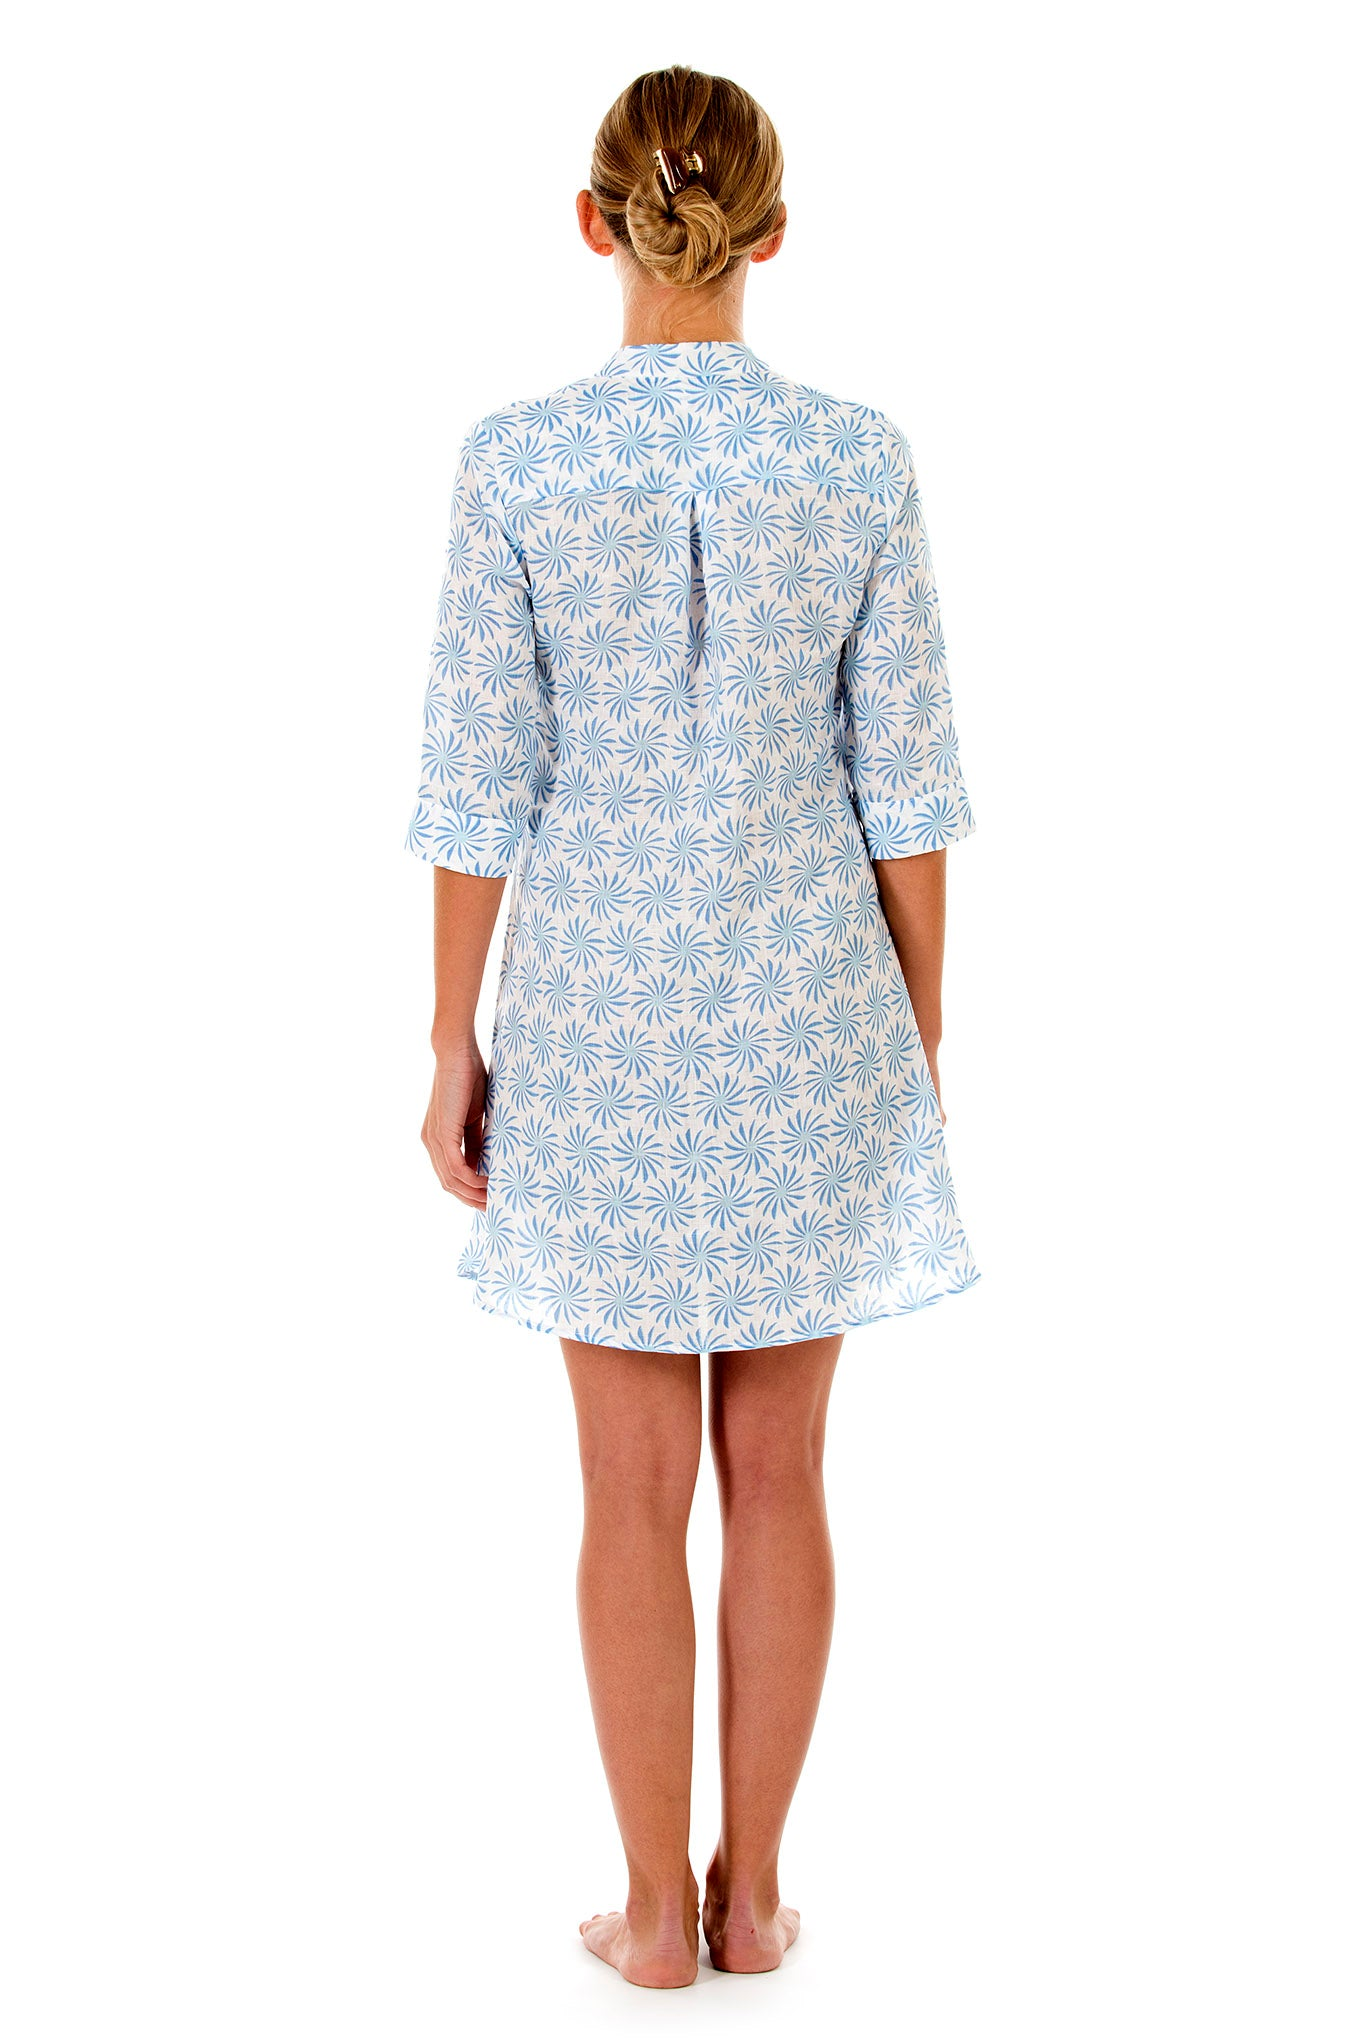 Womens Linen Flared Dress: CACTUS - BLUE back